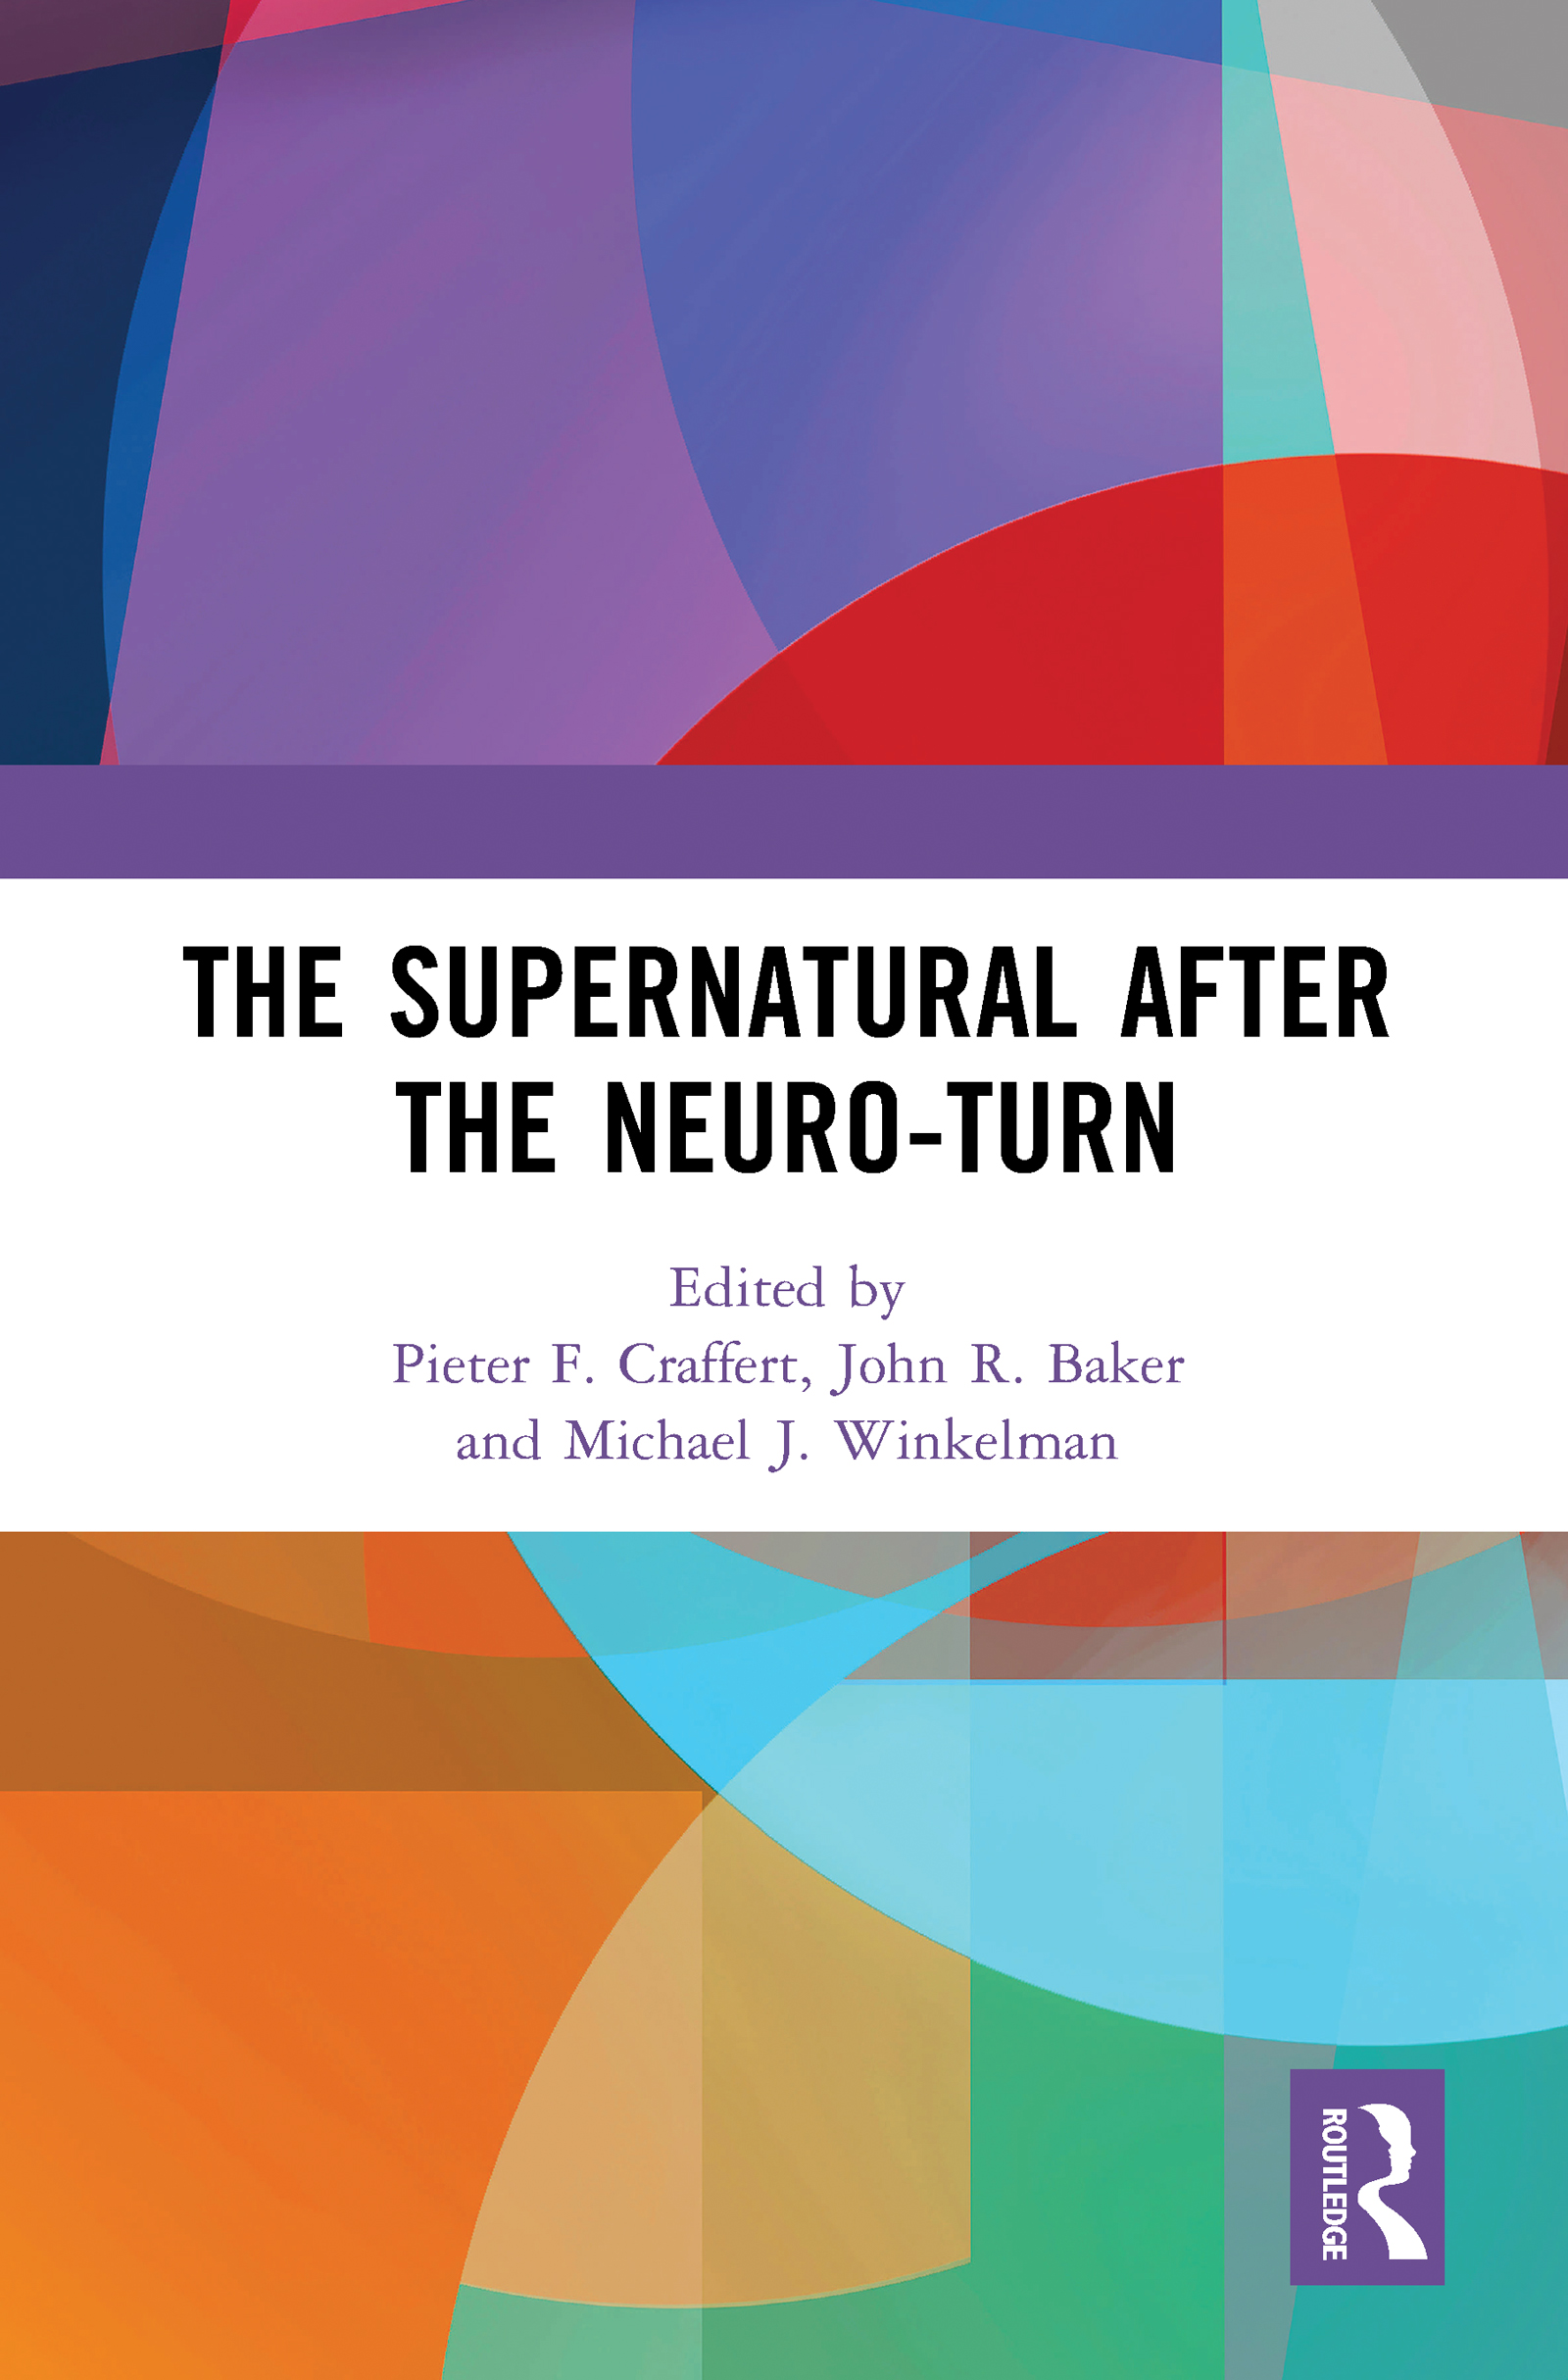 The Supernatural After the Neuro-Turn